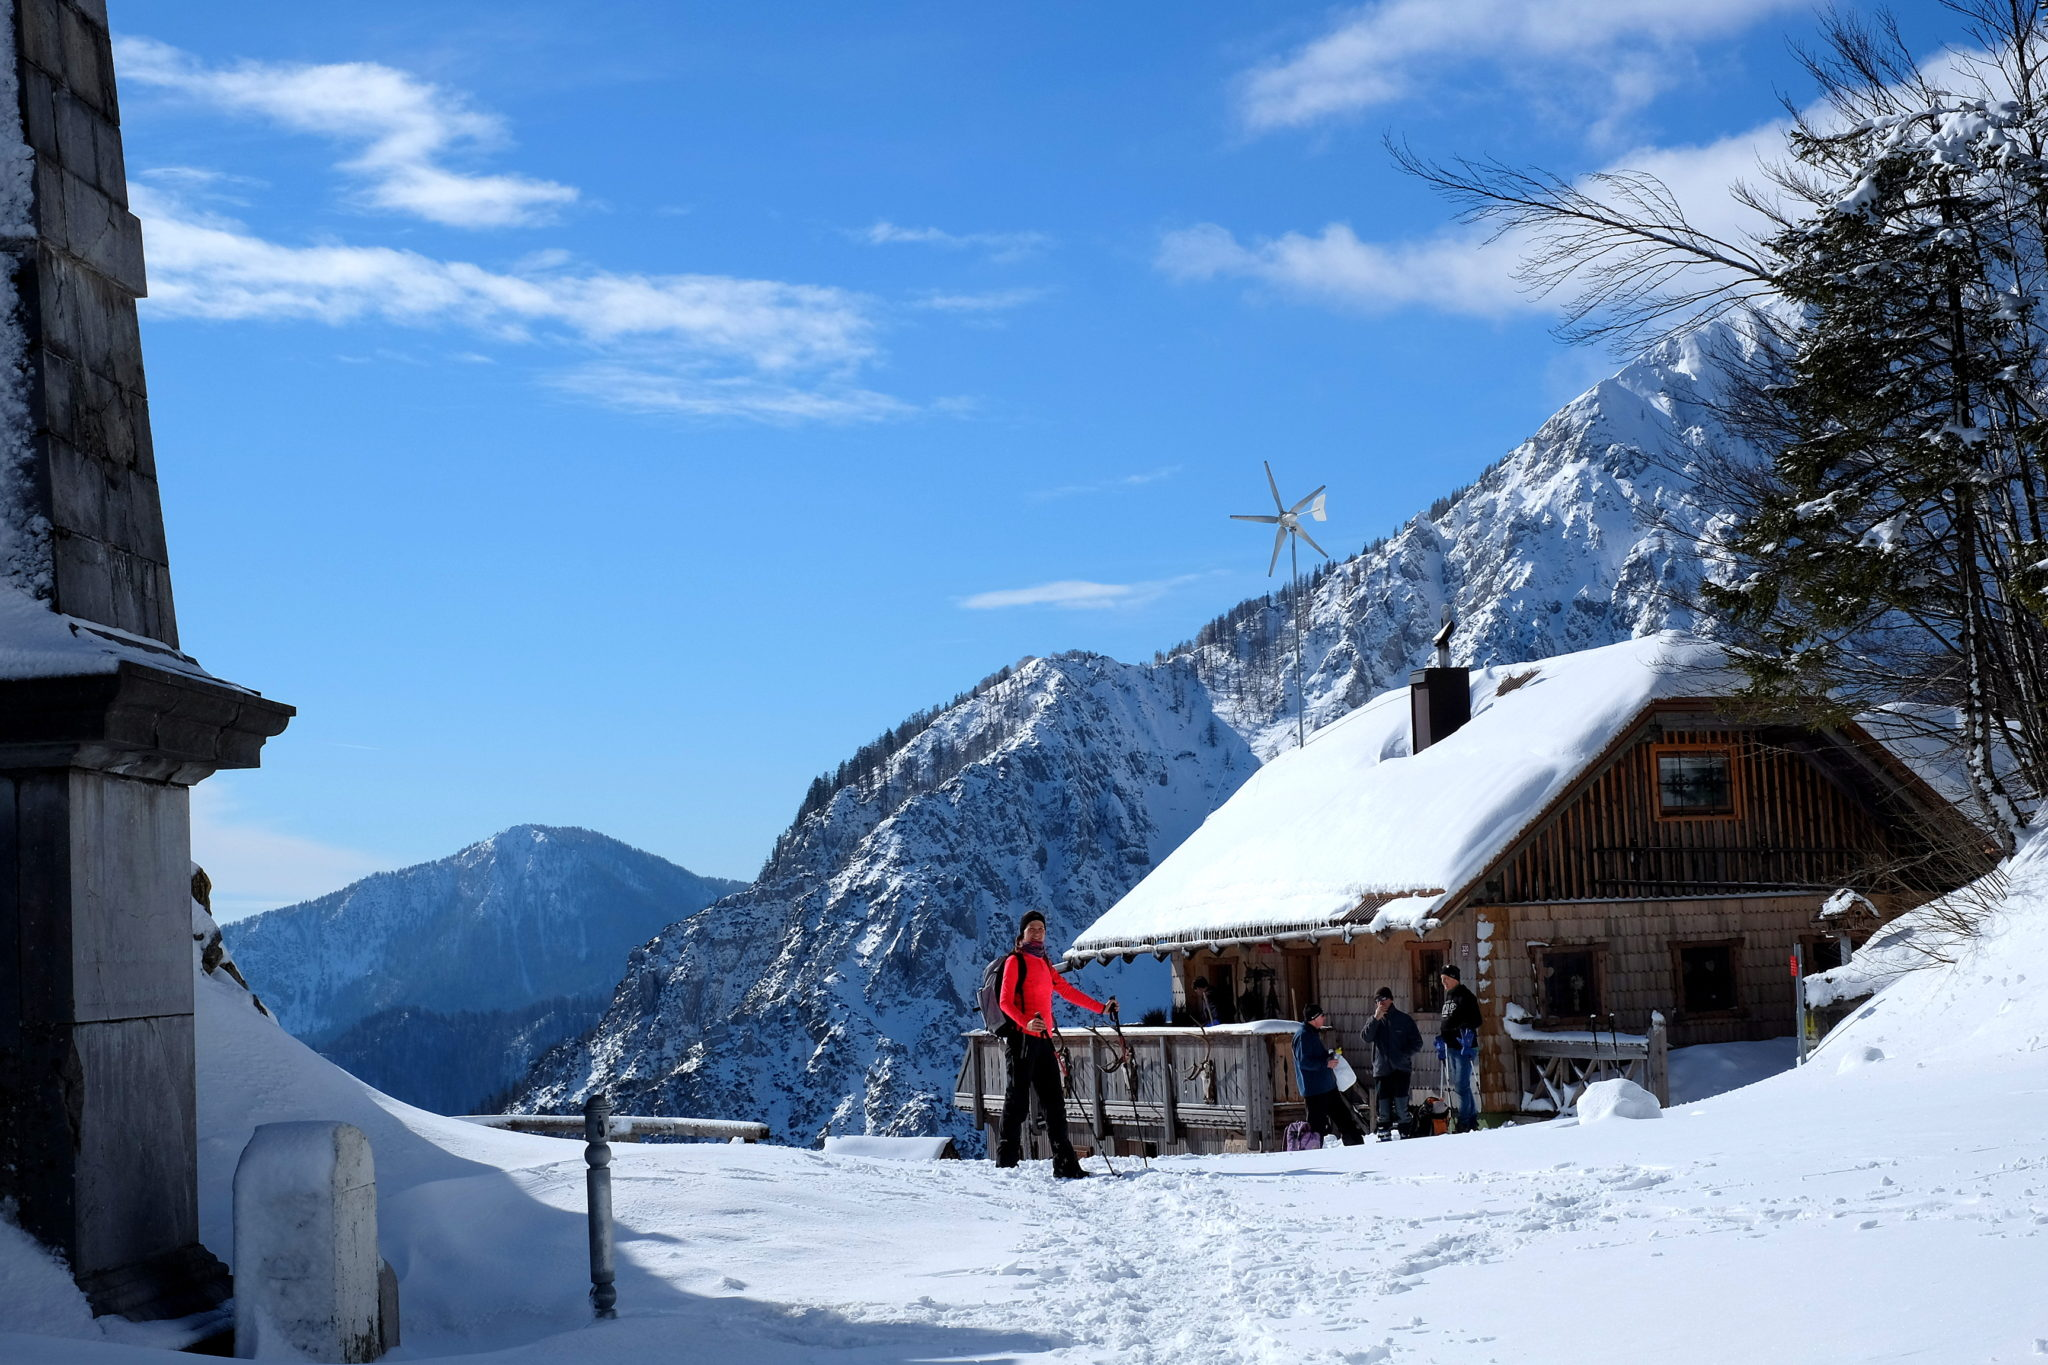 The hut at the Ljubelj Pass, 1,370 m (4,490 ft), with astonishing panoramic views over high mountains. Mt. Begunjščica in the background.